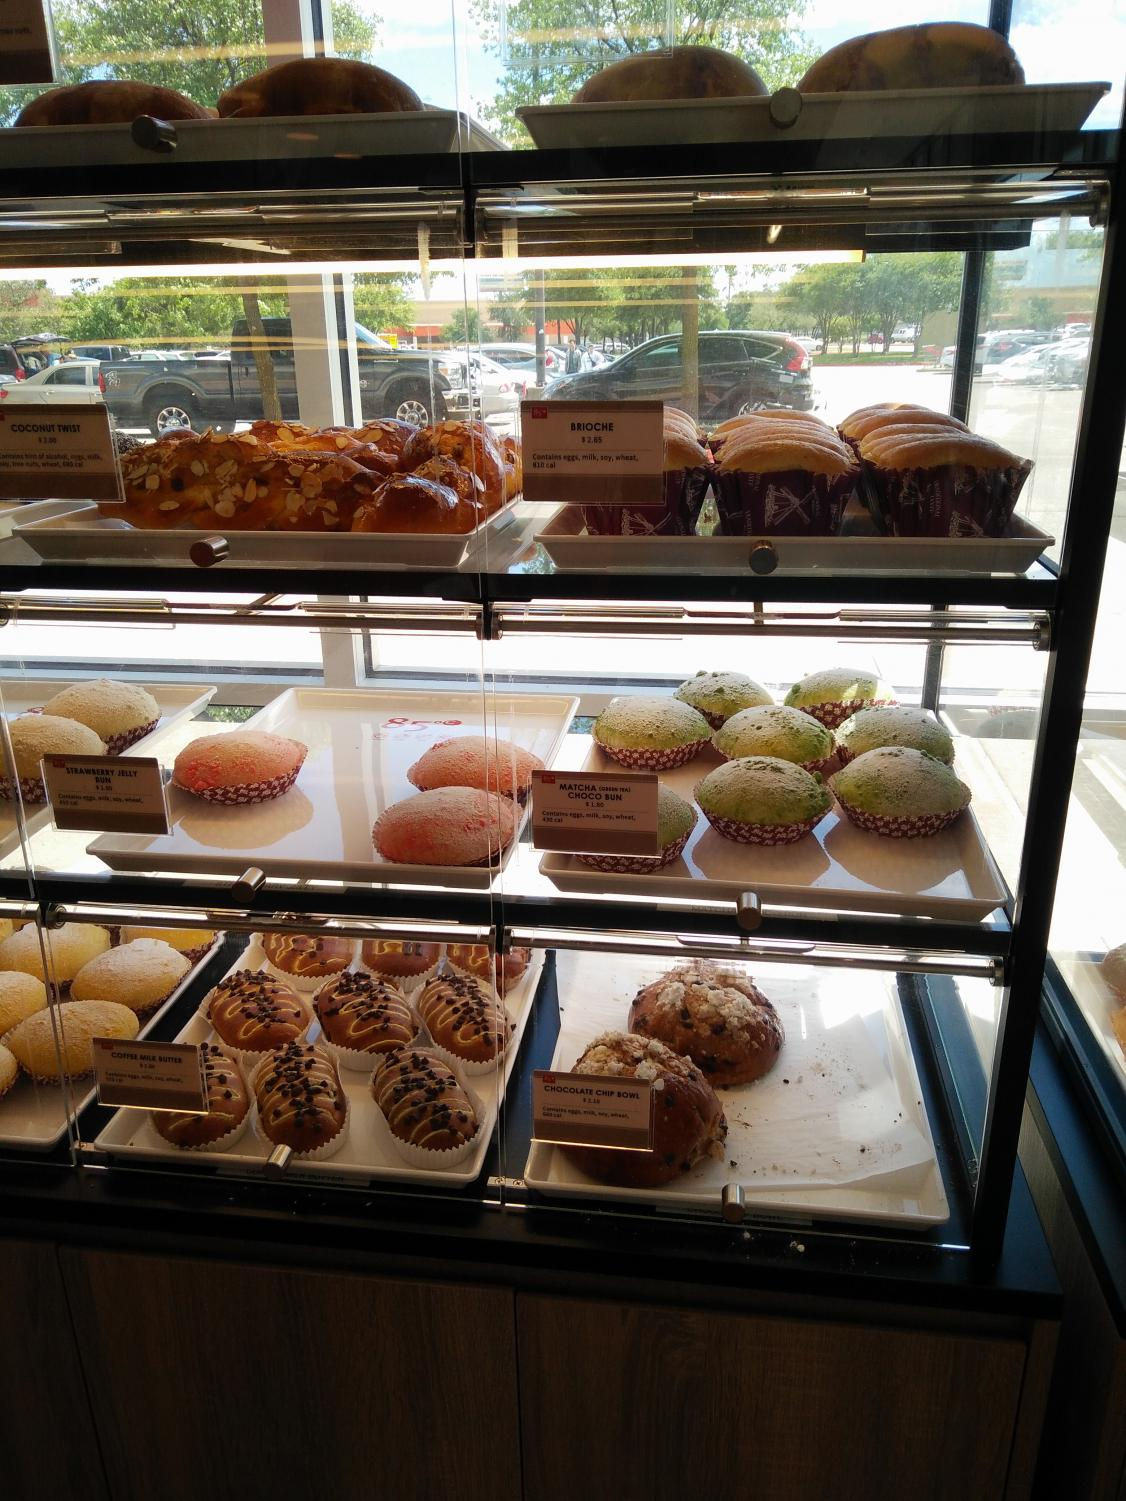 85%C2%B0C+Bakery+Cafe+Brings+Delightful+Treats+to+Austin